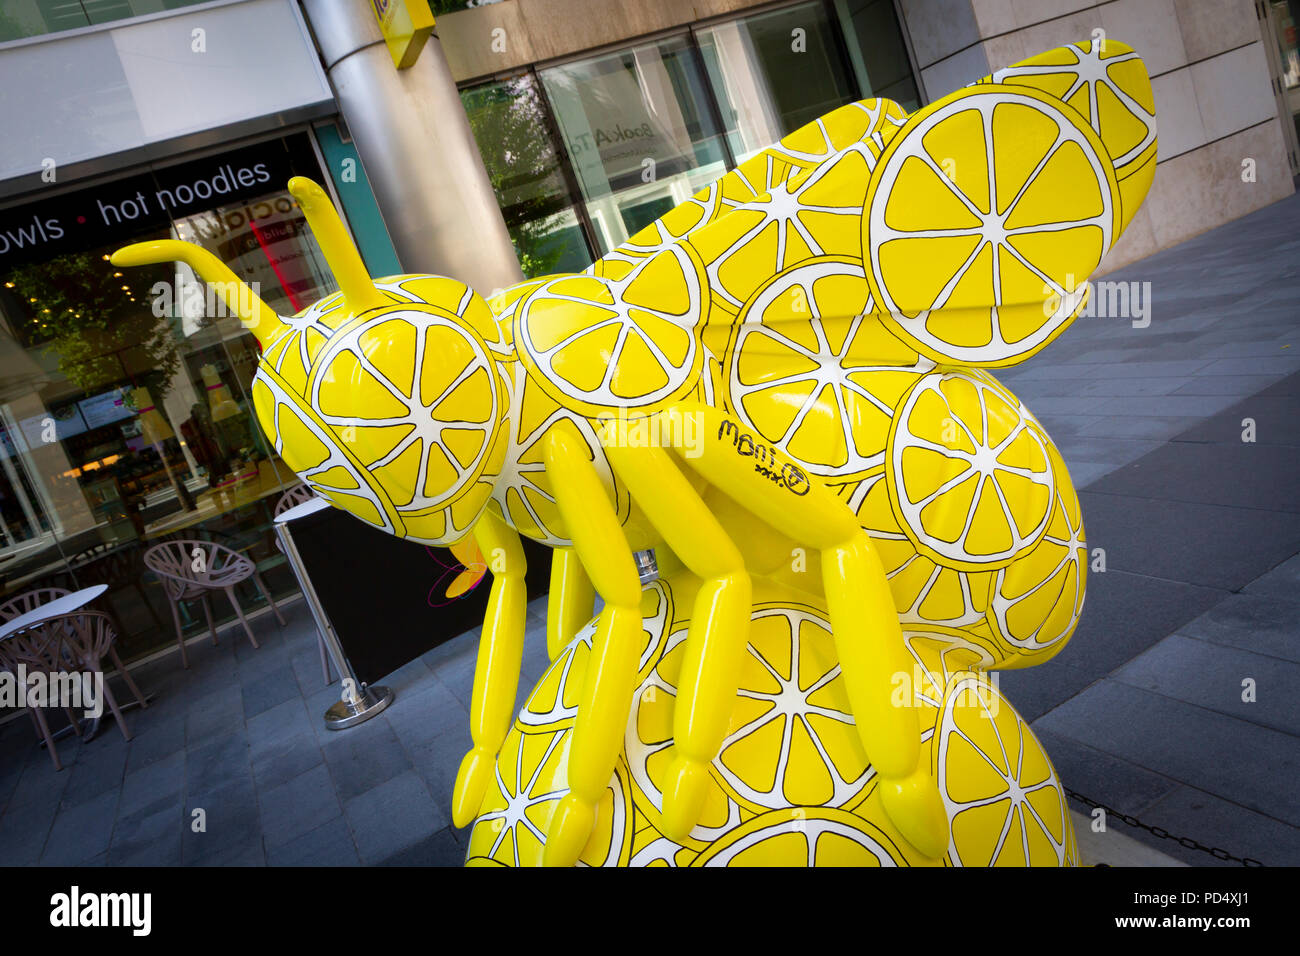 I Wanna Bee Adored - Lesley Hamilton. Bee in the City, public art event in the City of Manchester. Over 100 bees on a free family fun trail. - Stock Image